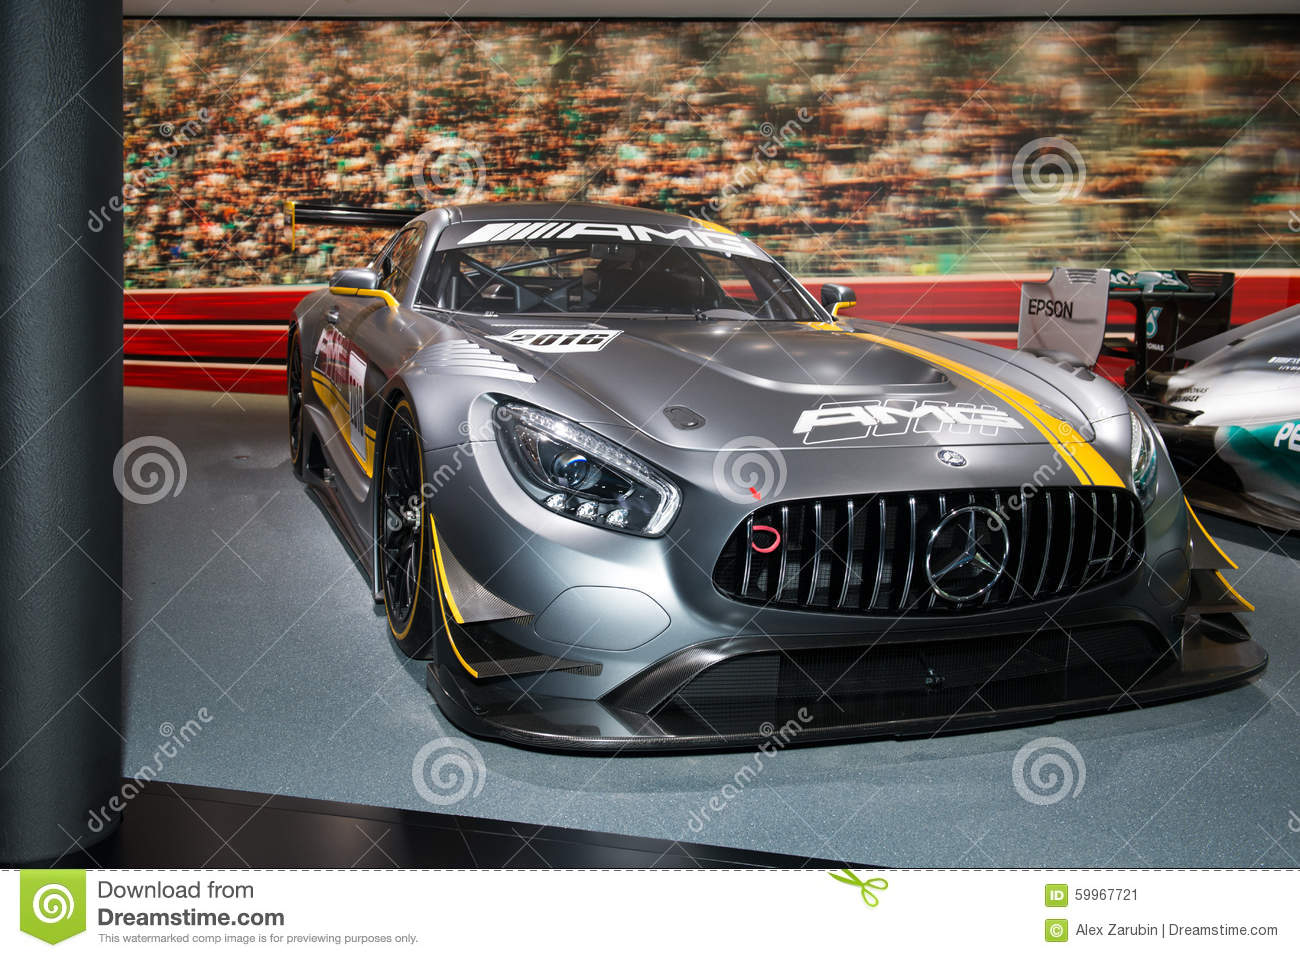 Voiture de course de mercedes amg photo ditorial image du principal sport 59967721 - Voiture de course image ...